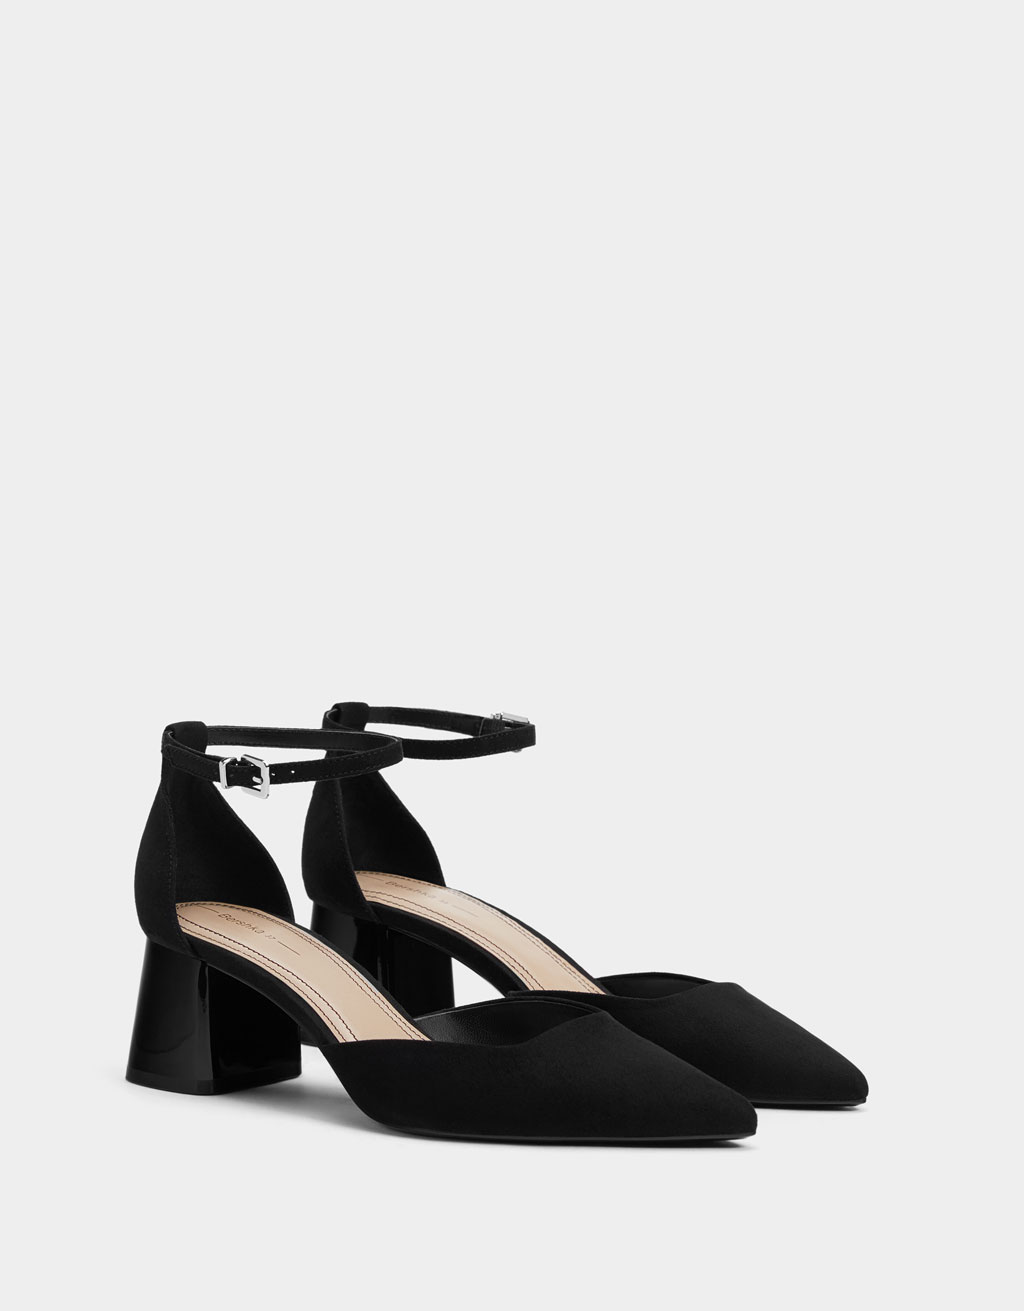 Mid-heel ankle strap shoes